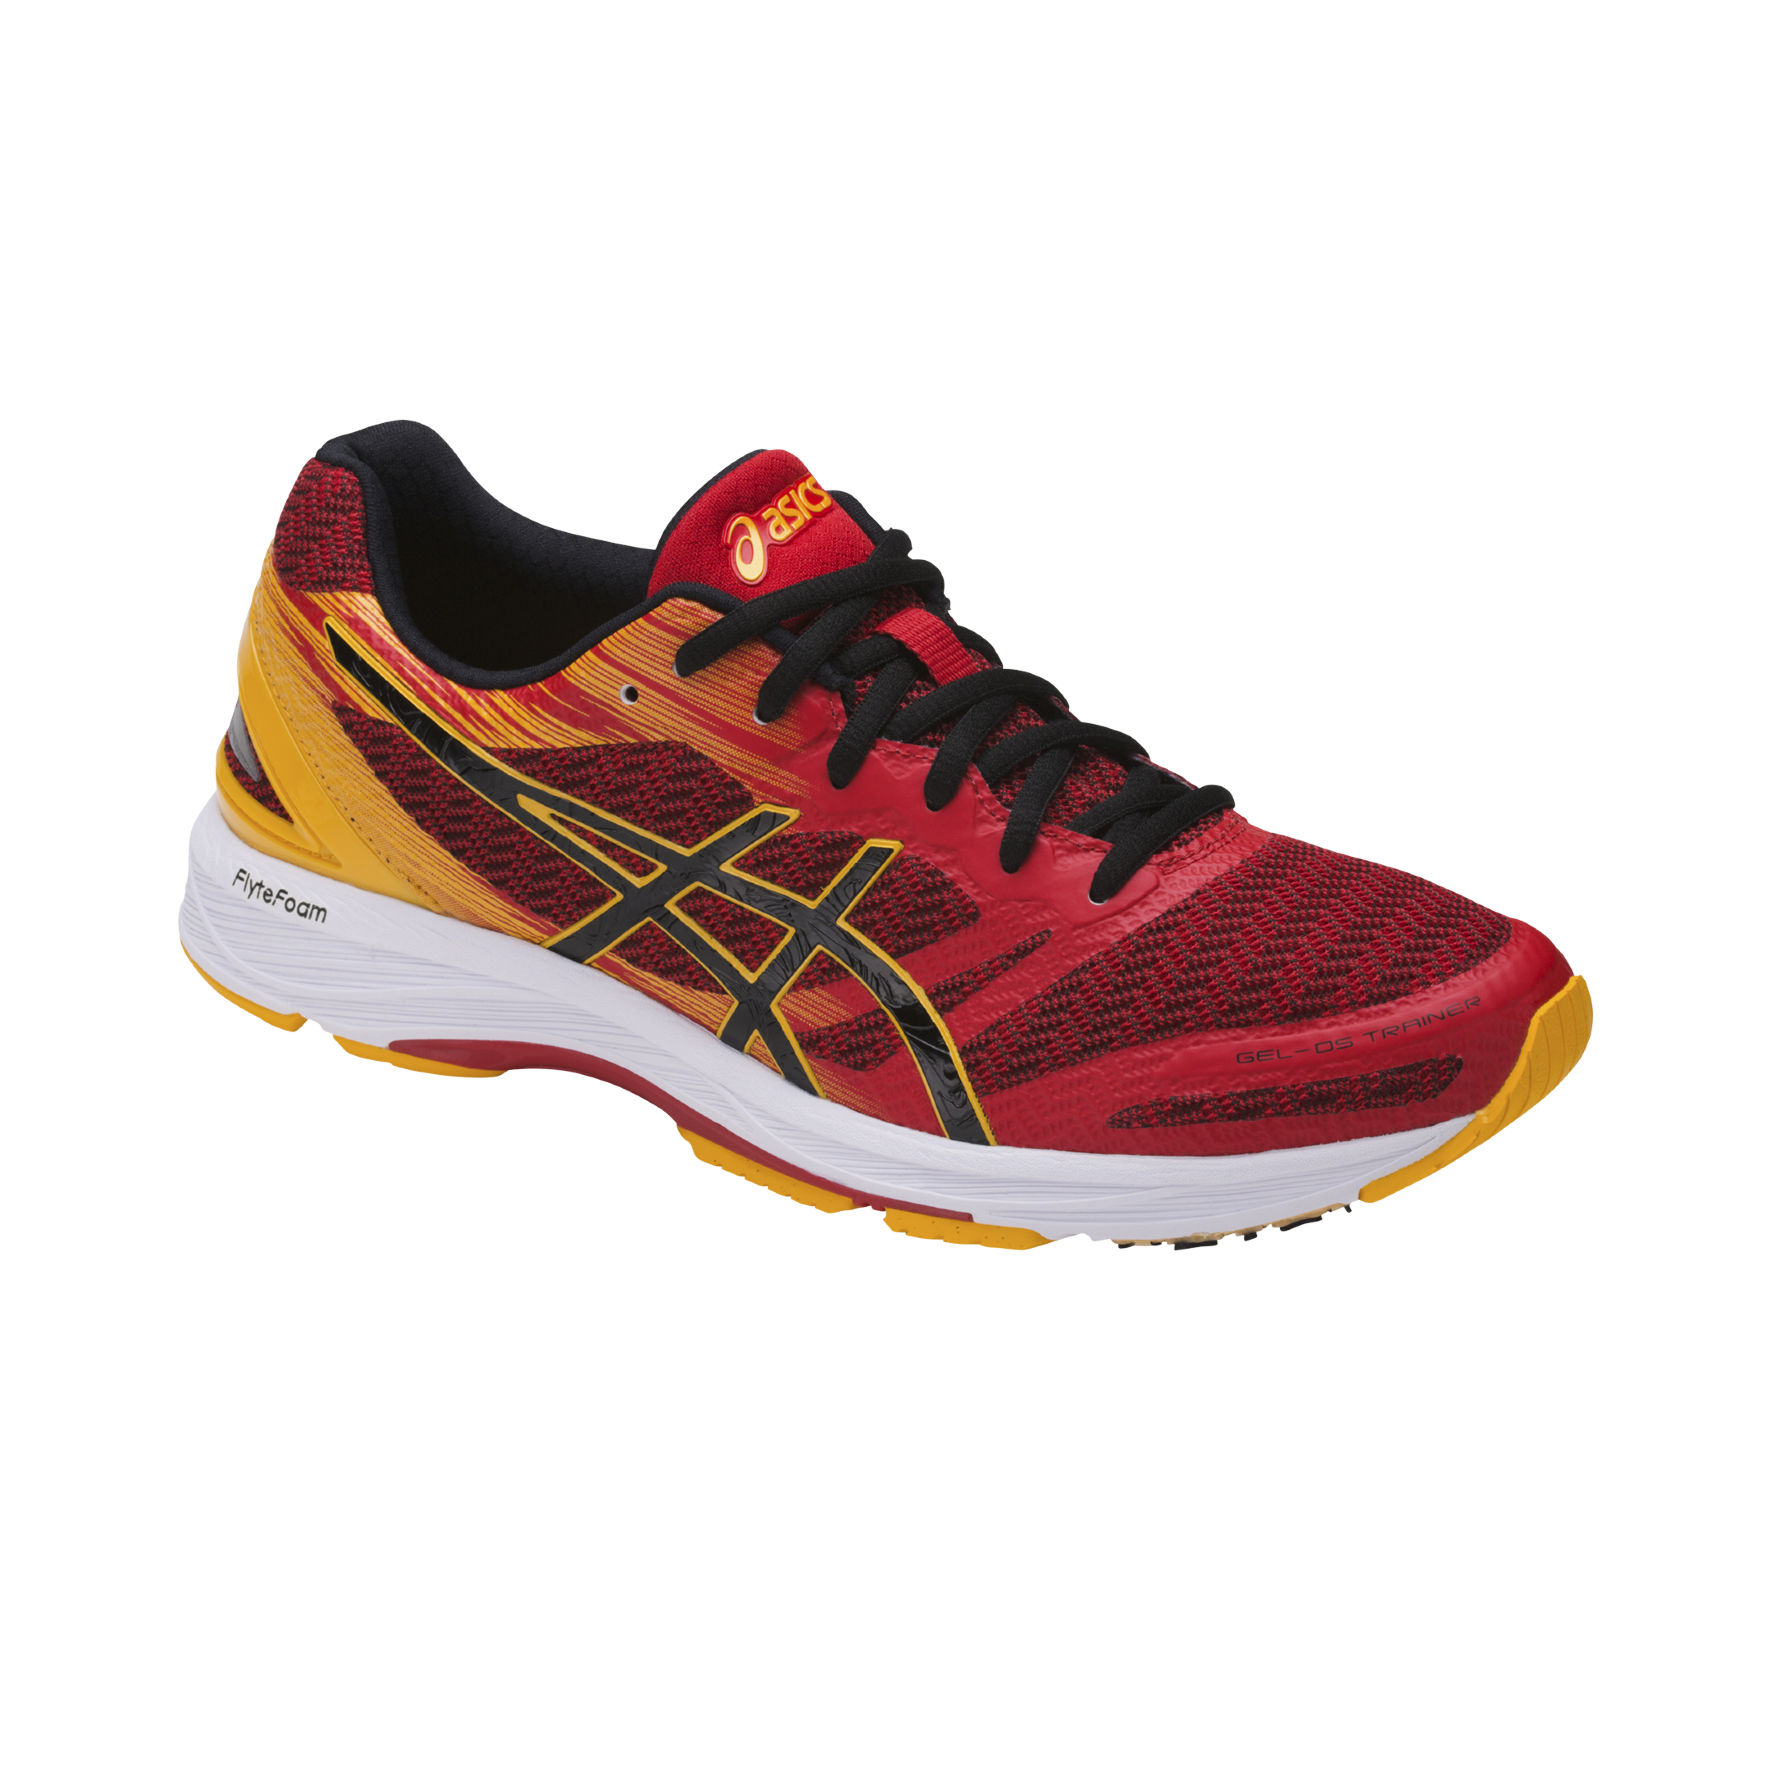 Asics DS Trainer 22 in Red Gold